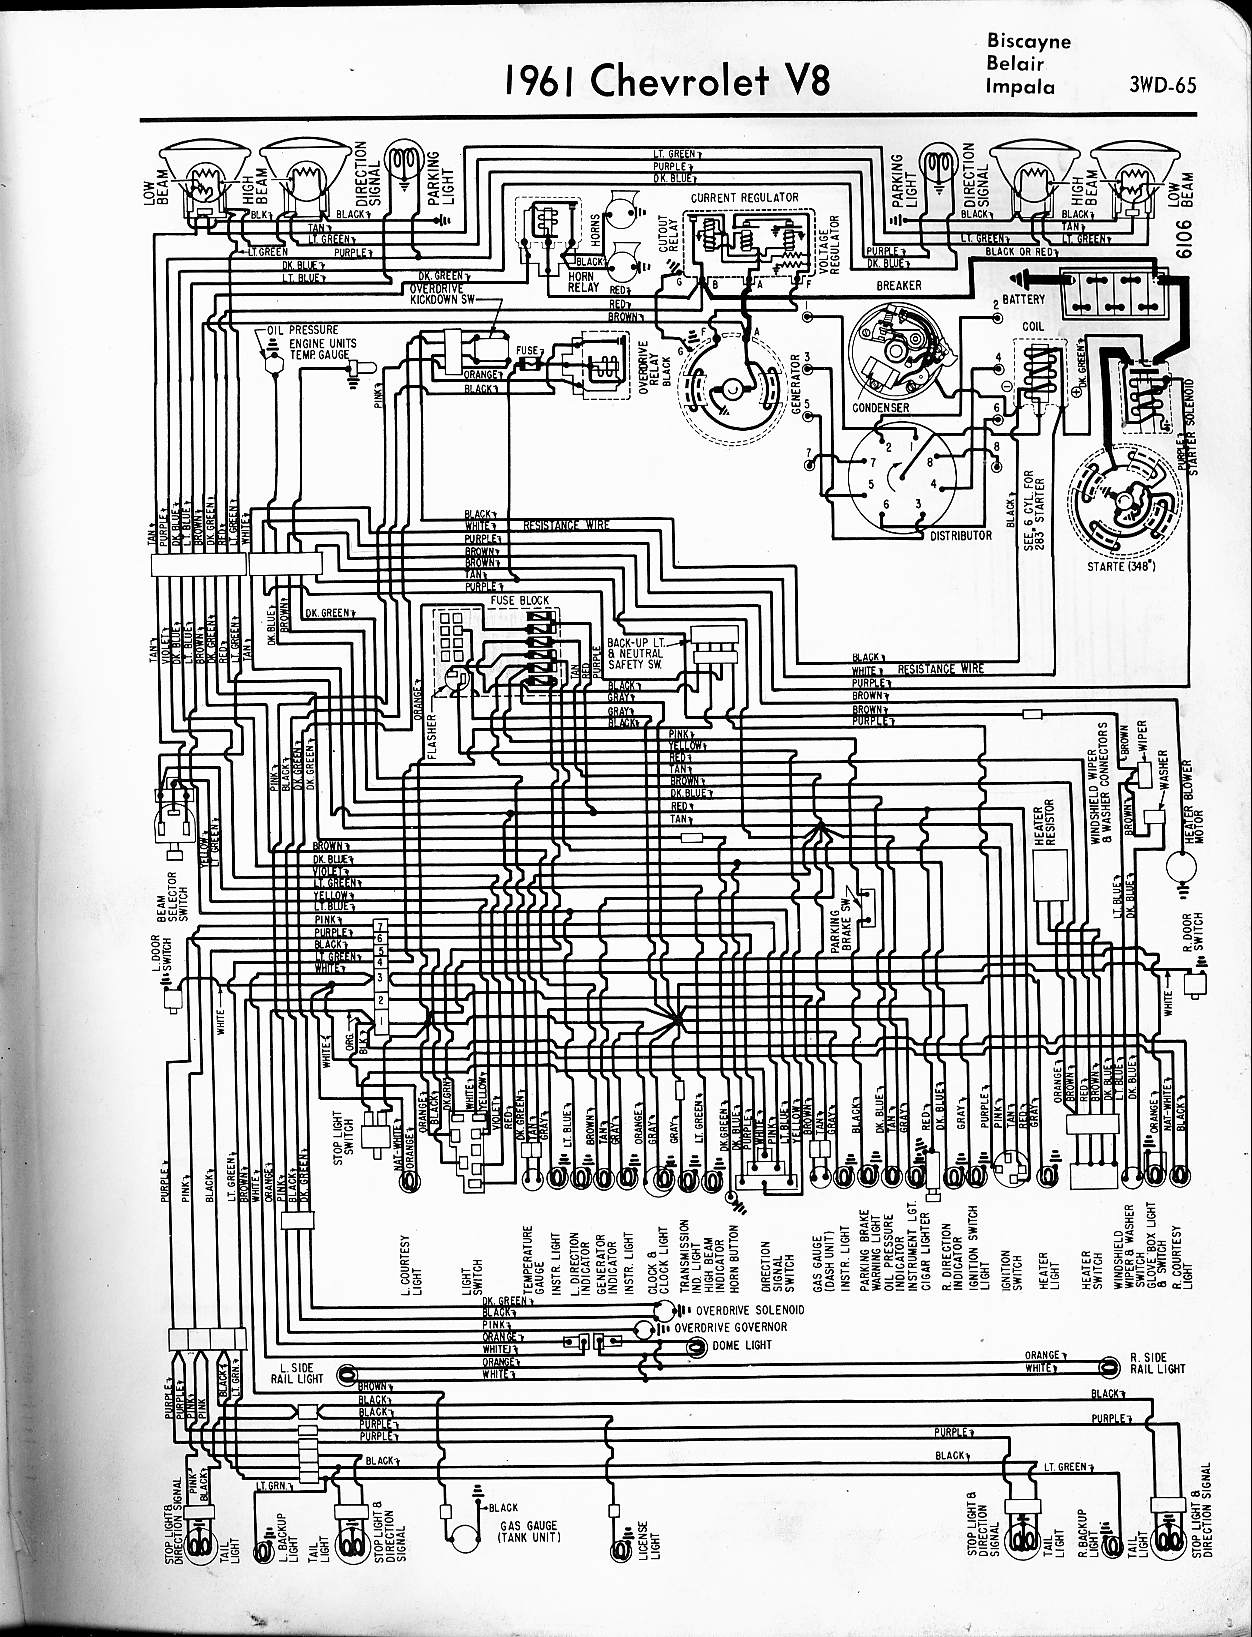 63 Chevy Wiring Diagram - wiring diagrams schematics